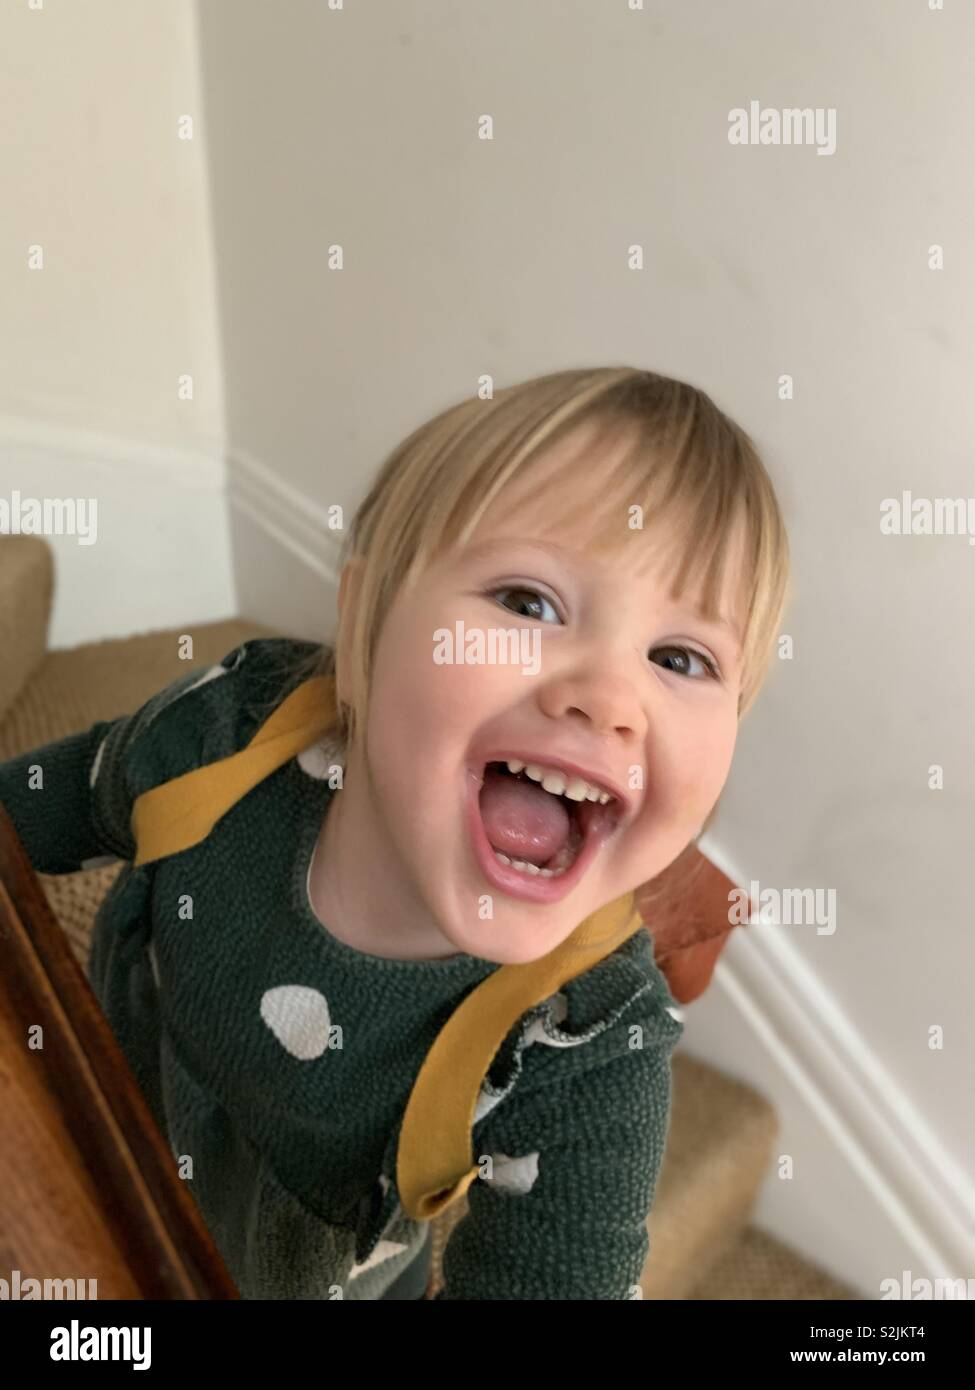 Cheeky little girl grinning - Stock Image